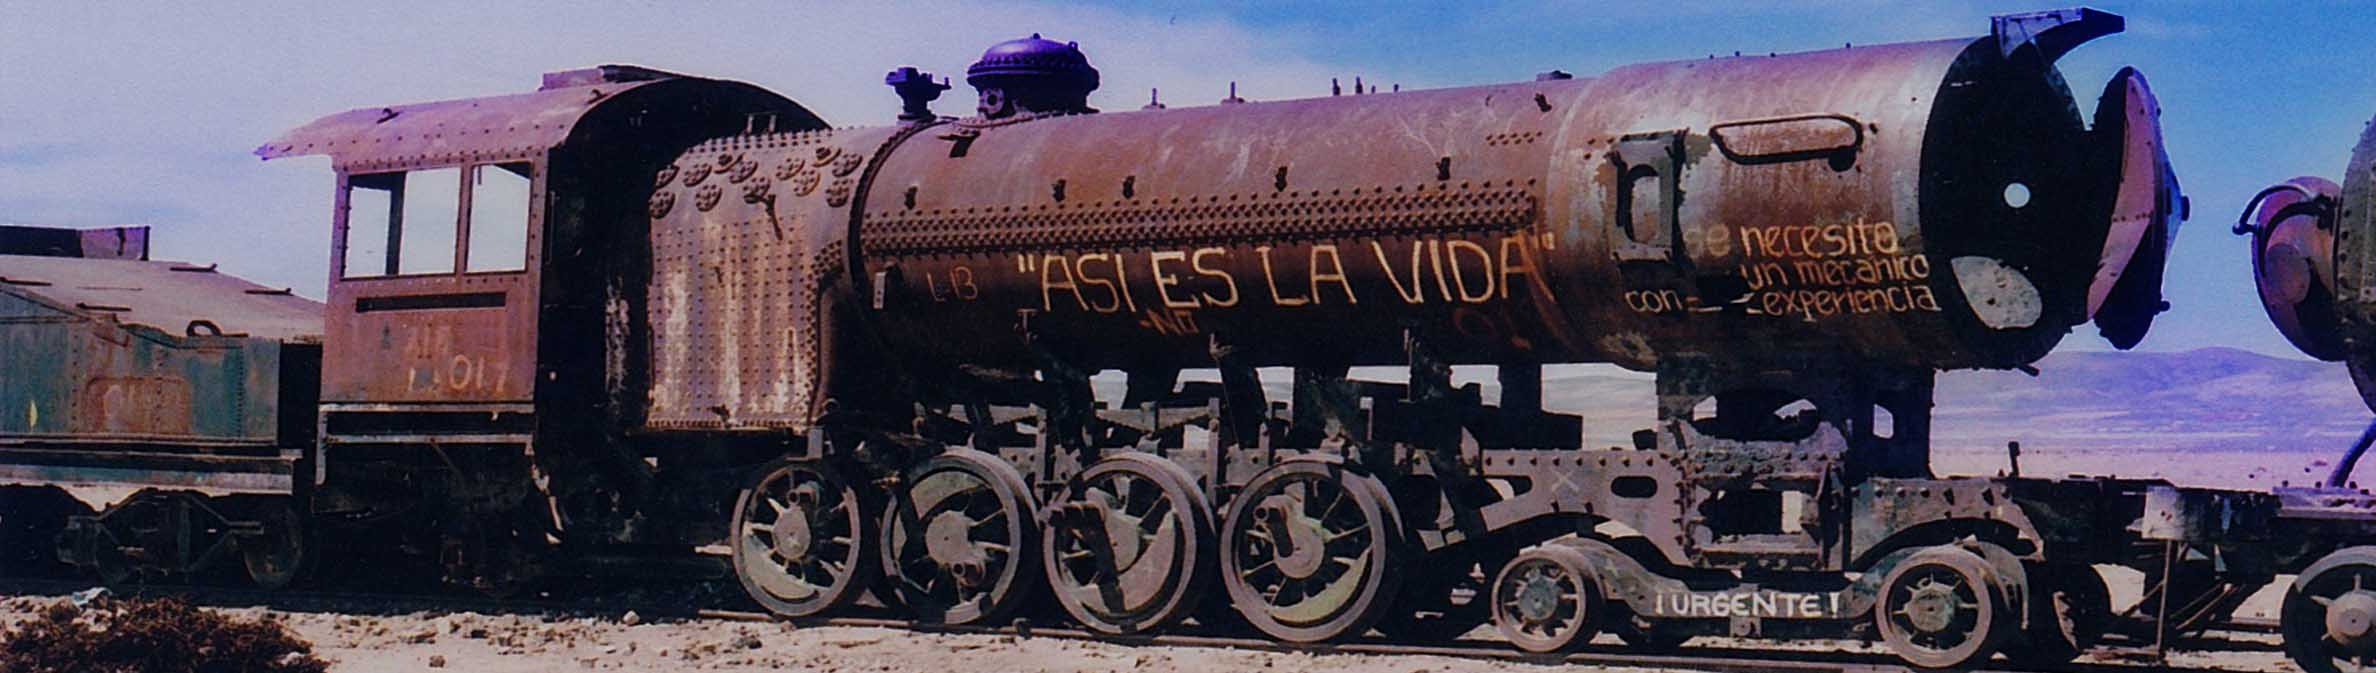 image of train graveyard in bolivia